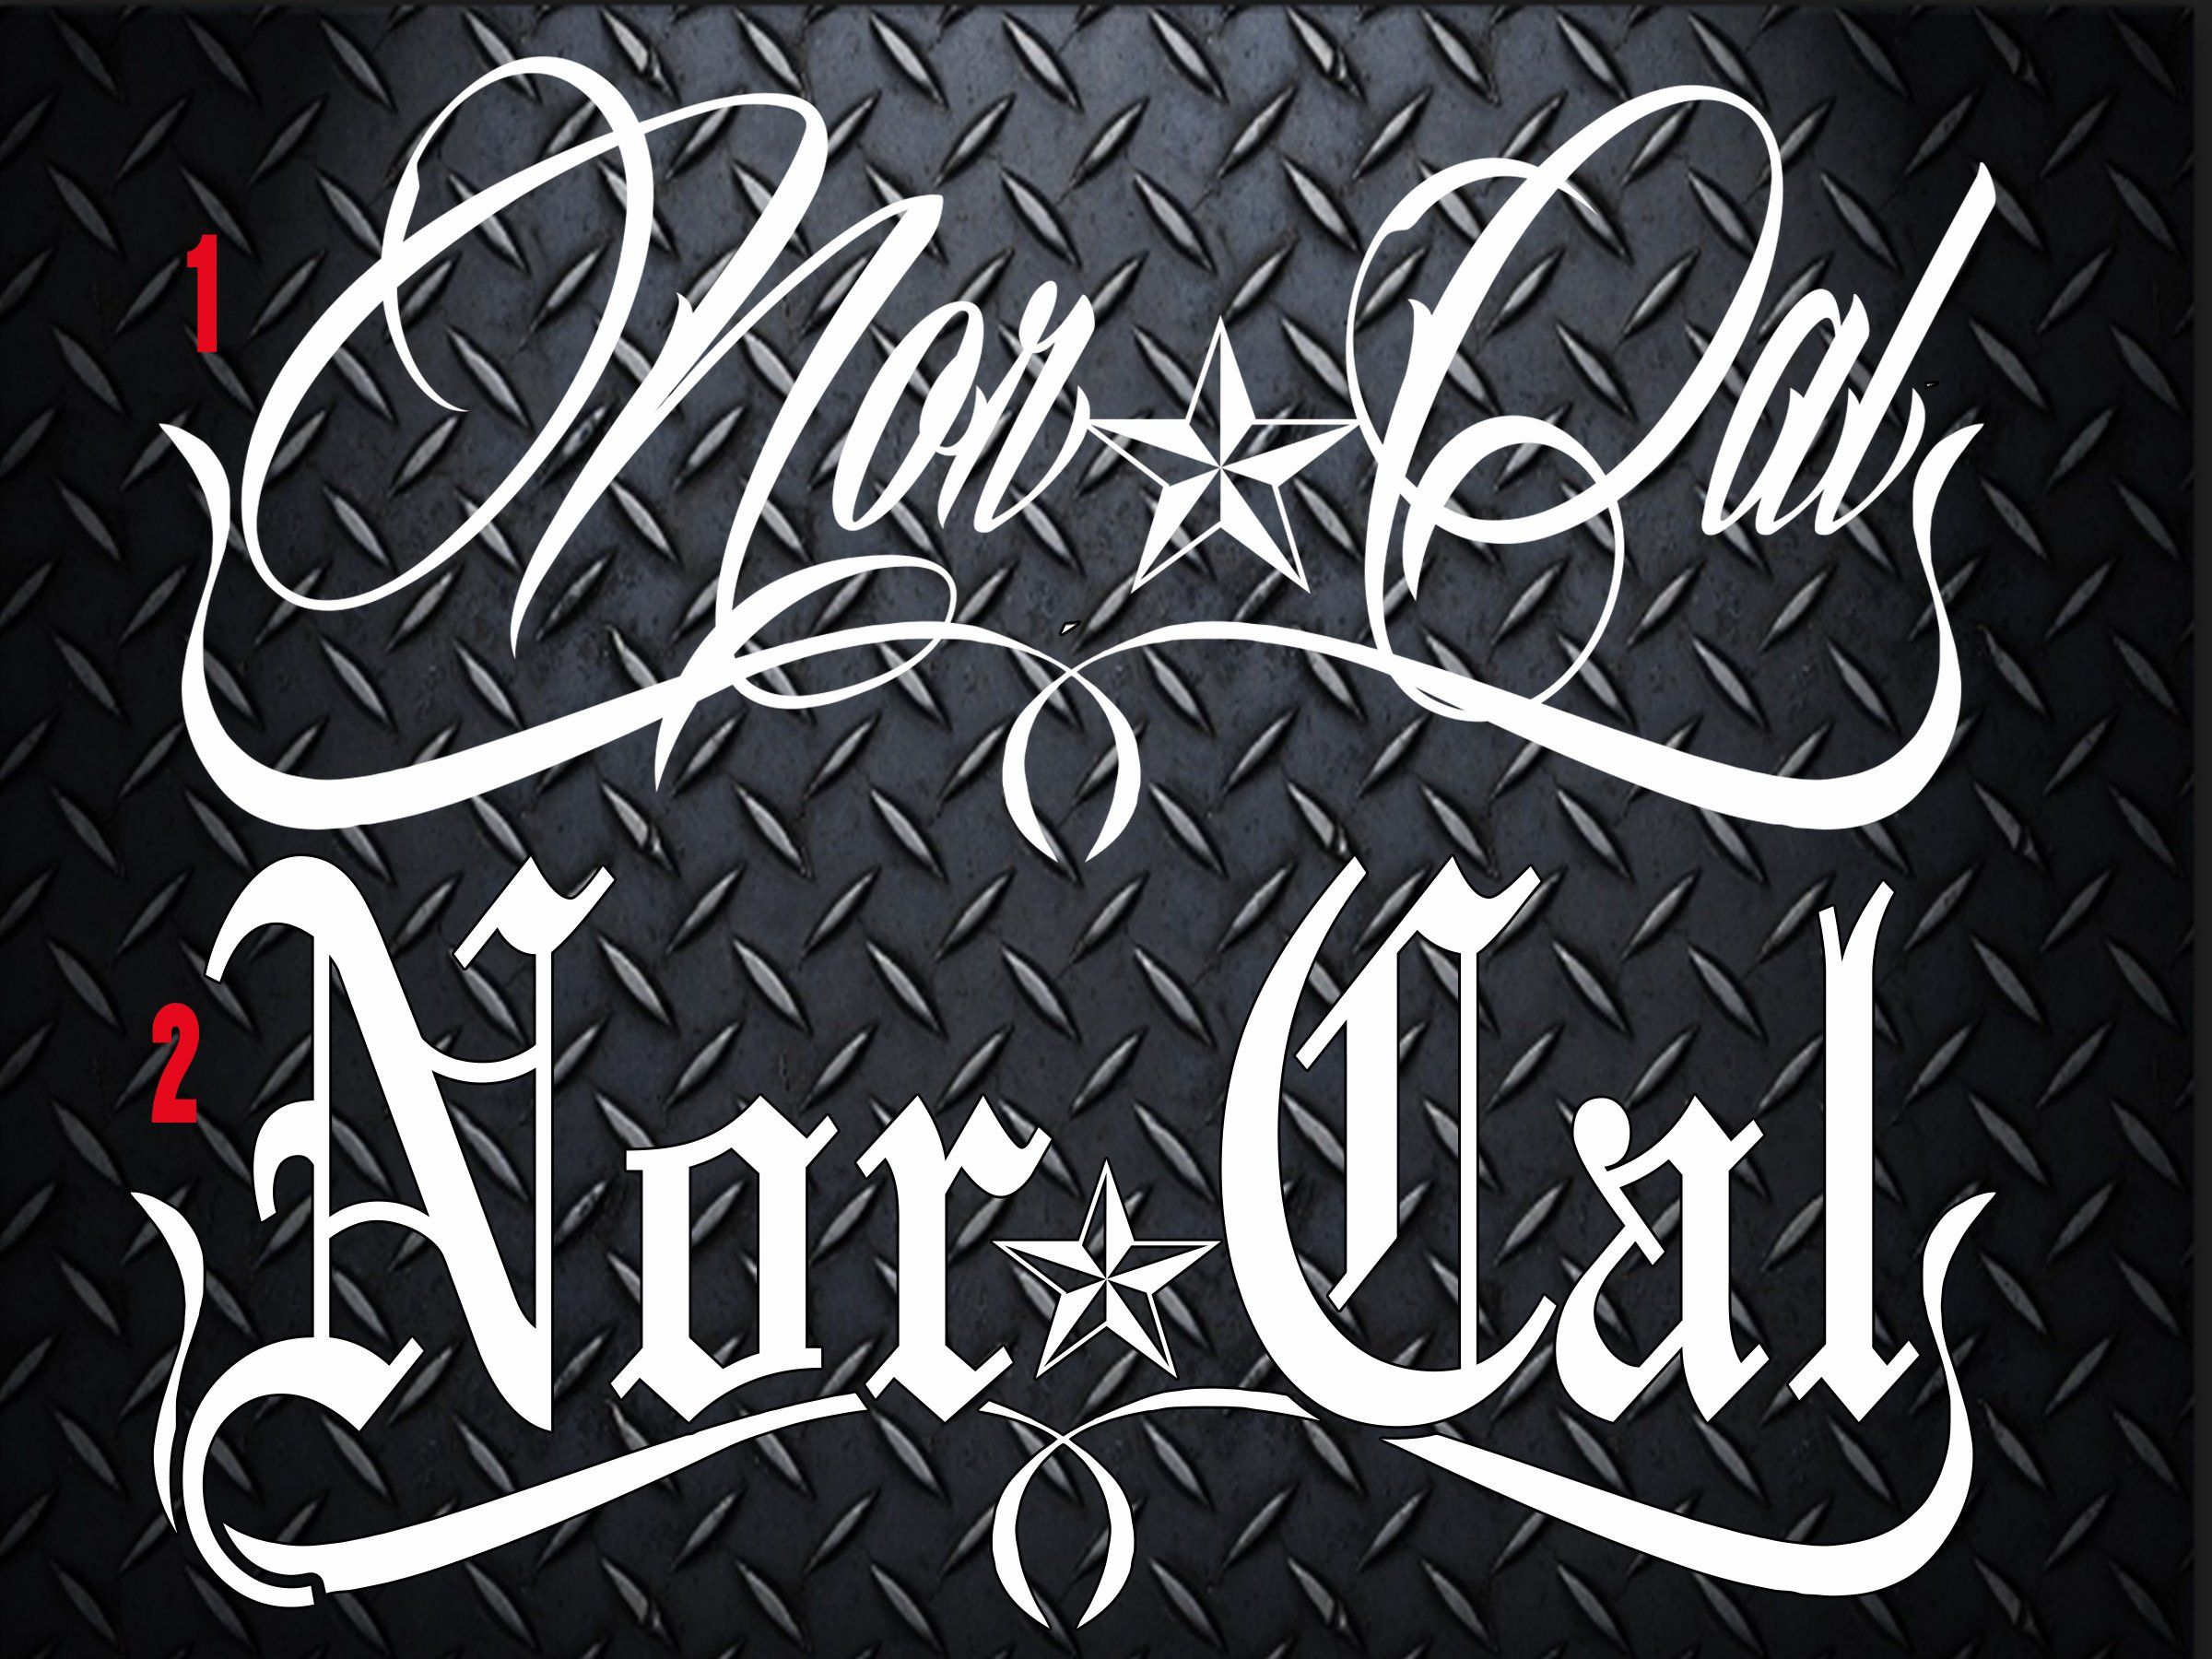 Soldiers Aunt Vinyl Car Decal 10-by-10 inches Military Pride Red